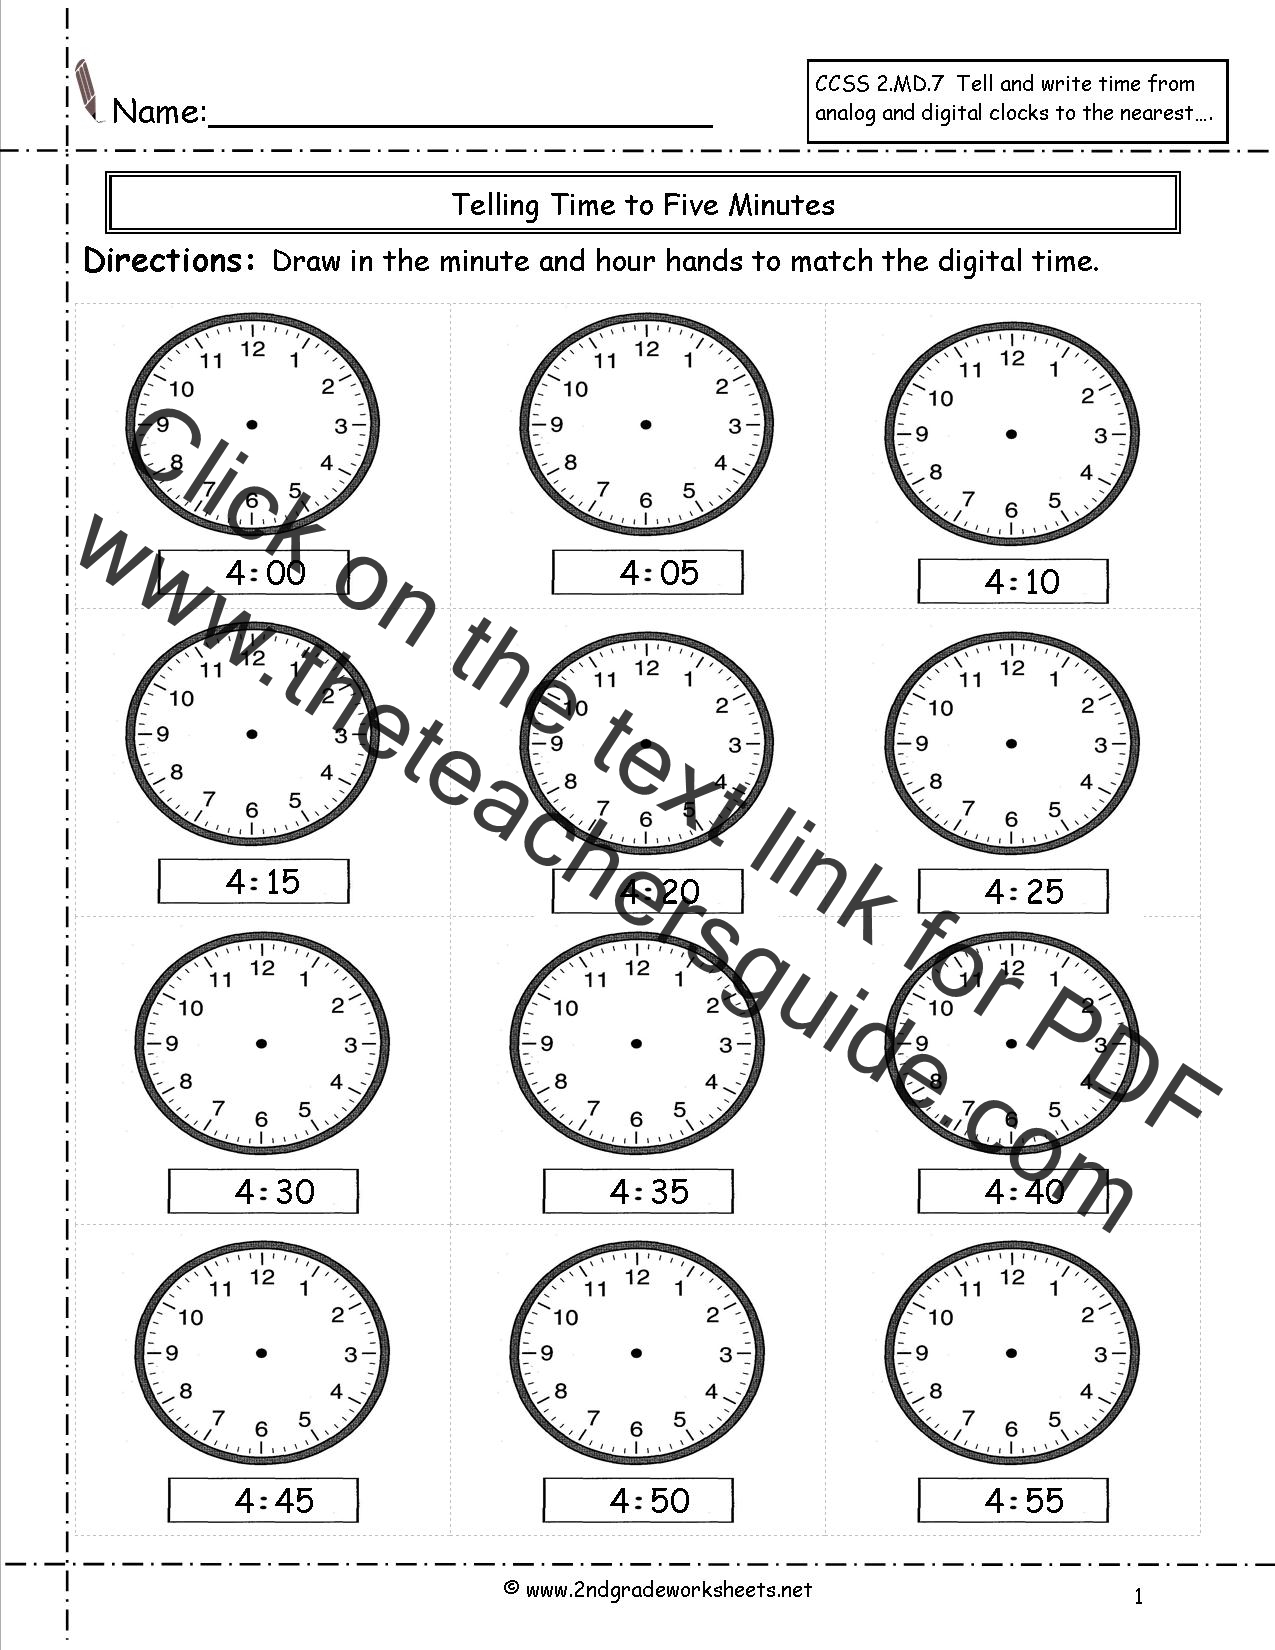 CCSS 2MD7 Worksheets Telling Time to Five Minutes Worksheets – Telling Time to the Quarter Hour Worksheets